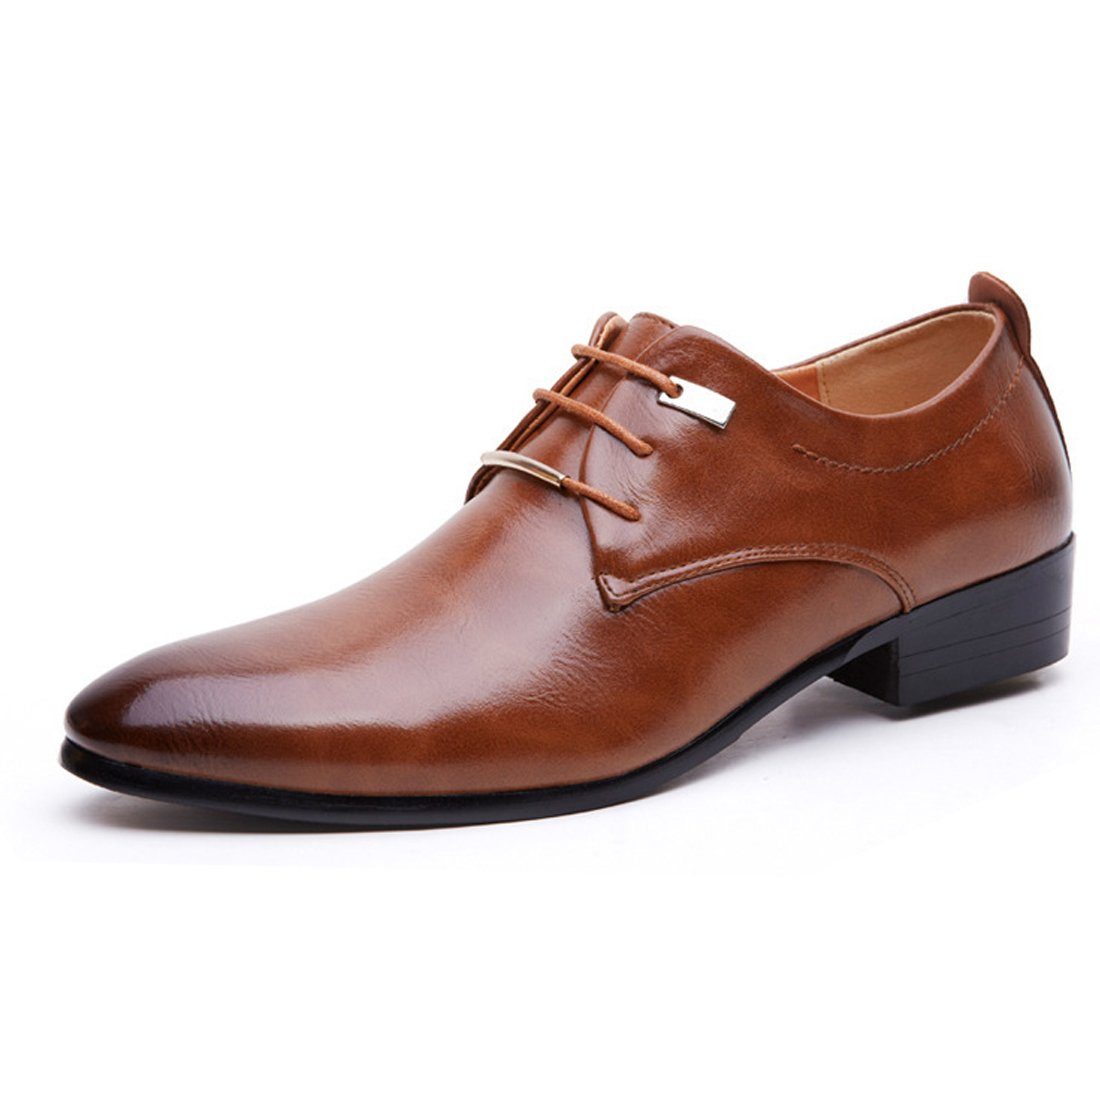 Men Pointed Toe Business Dress Formal Leather Shoes Flat Oxfords Loafers Slip On Brown by Gaorui